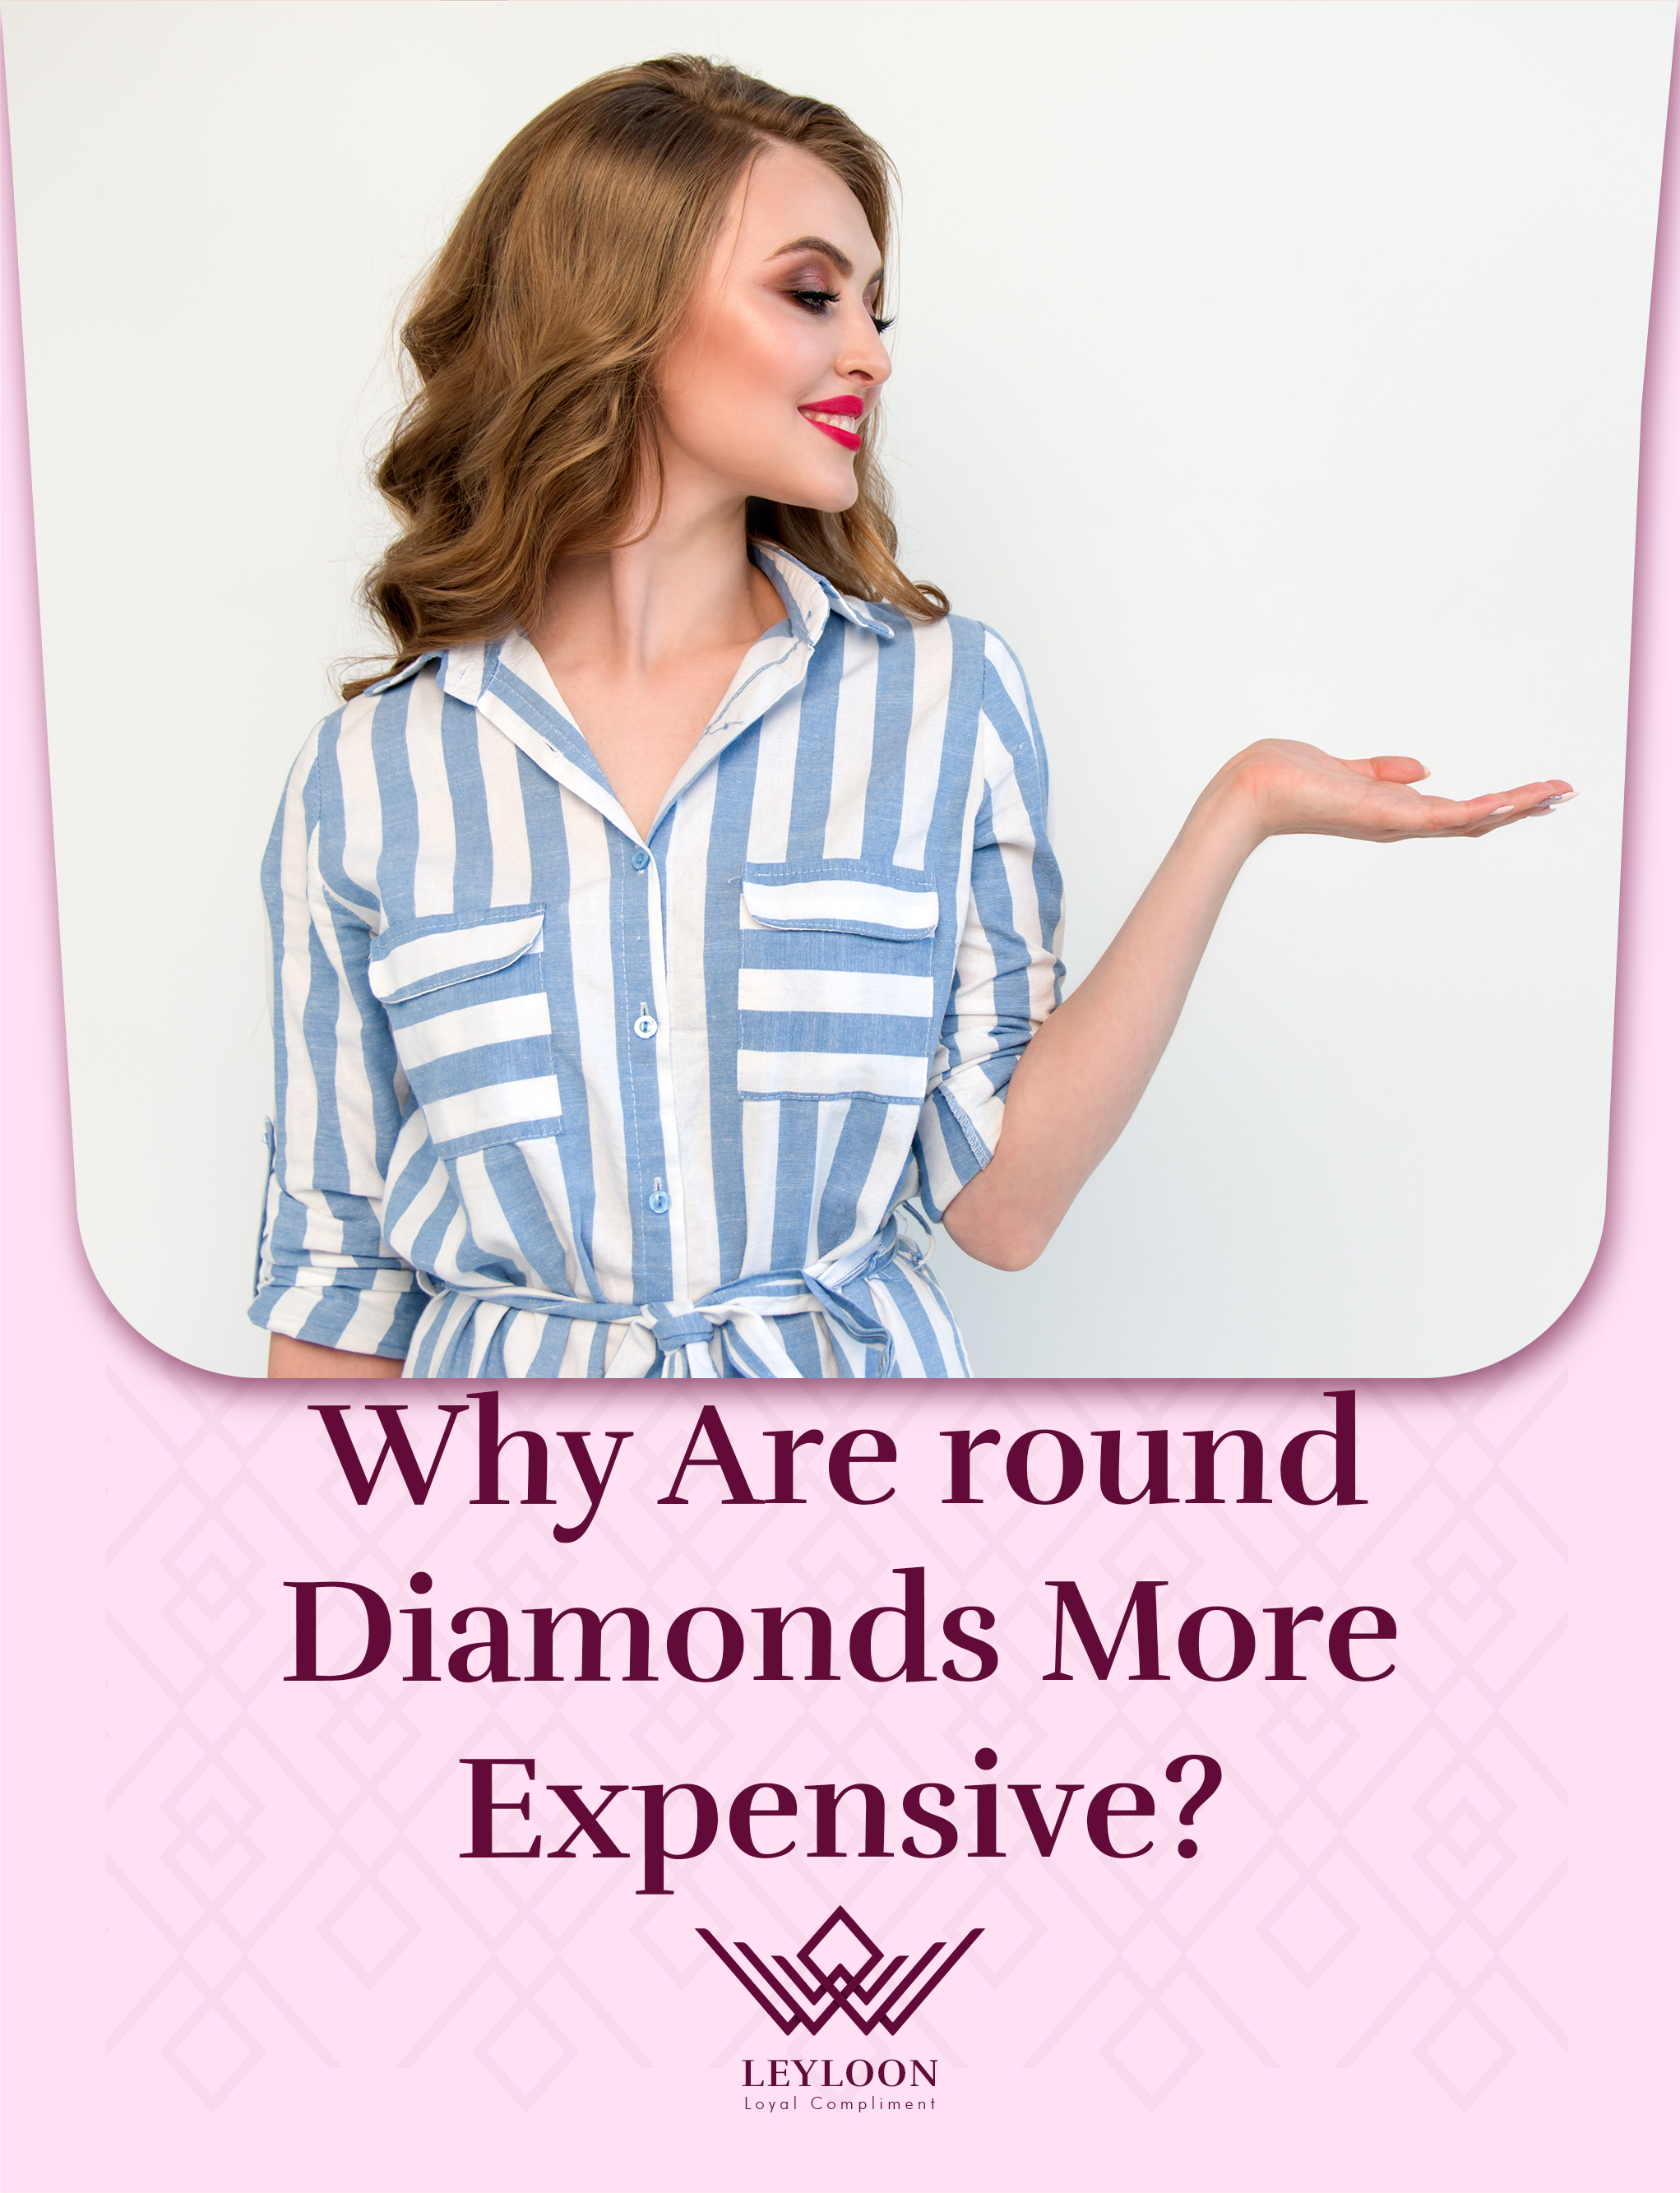 Why Are round Diamonds More Expensive?